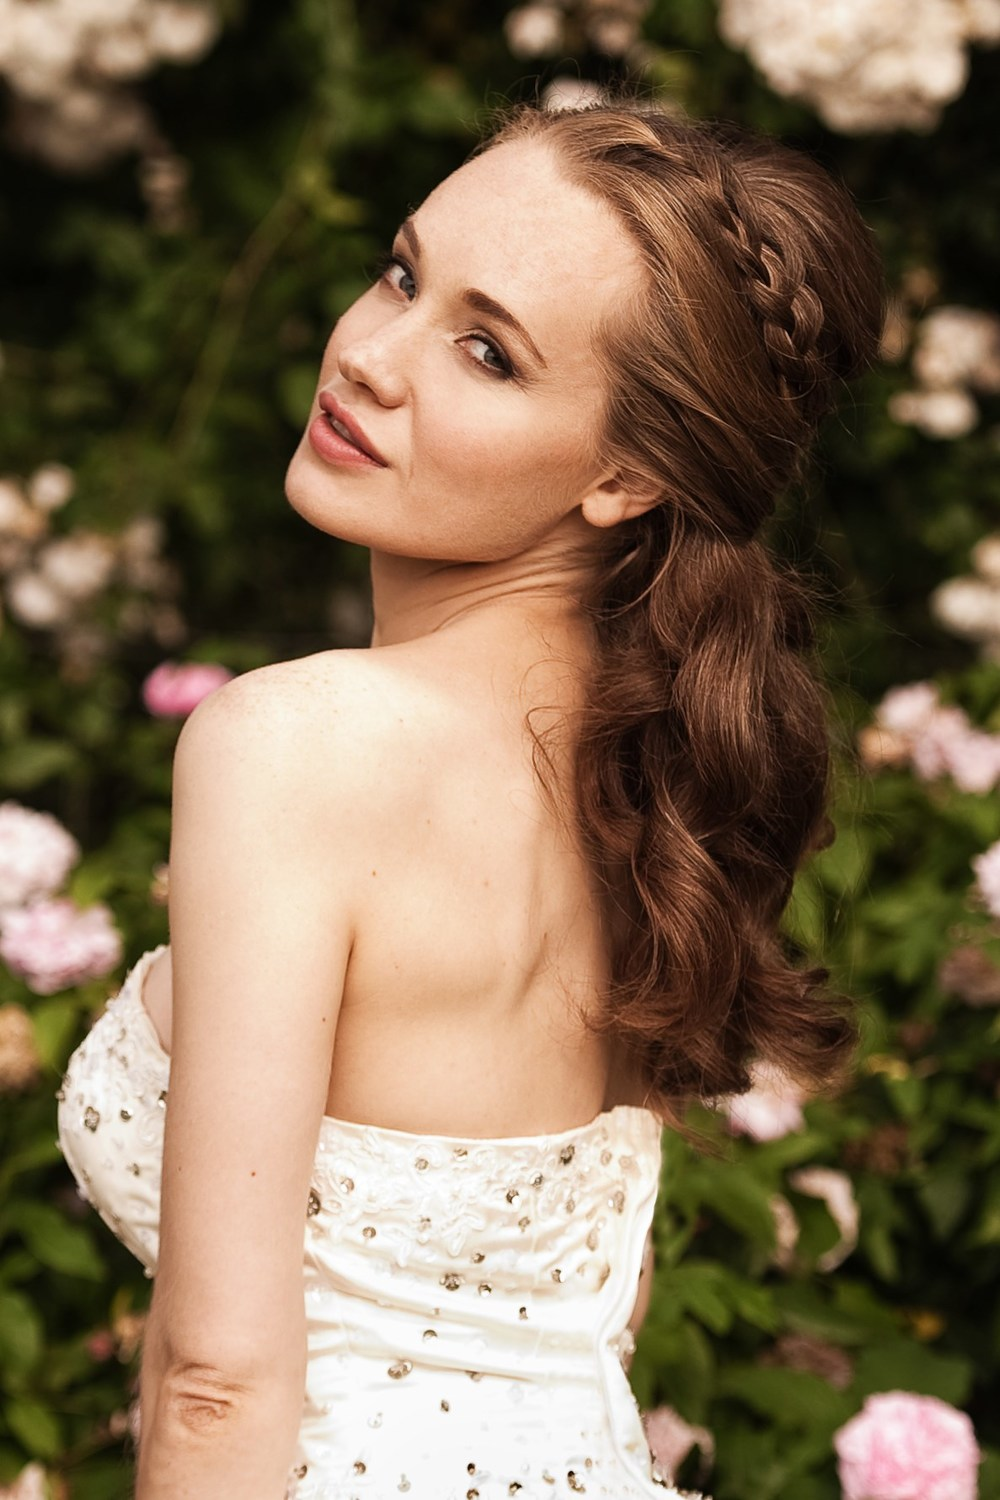 Hair And Makeup Pricing For Wedding : Wedding Make up Images and Hair Styles in London: Gallery ...